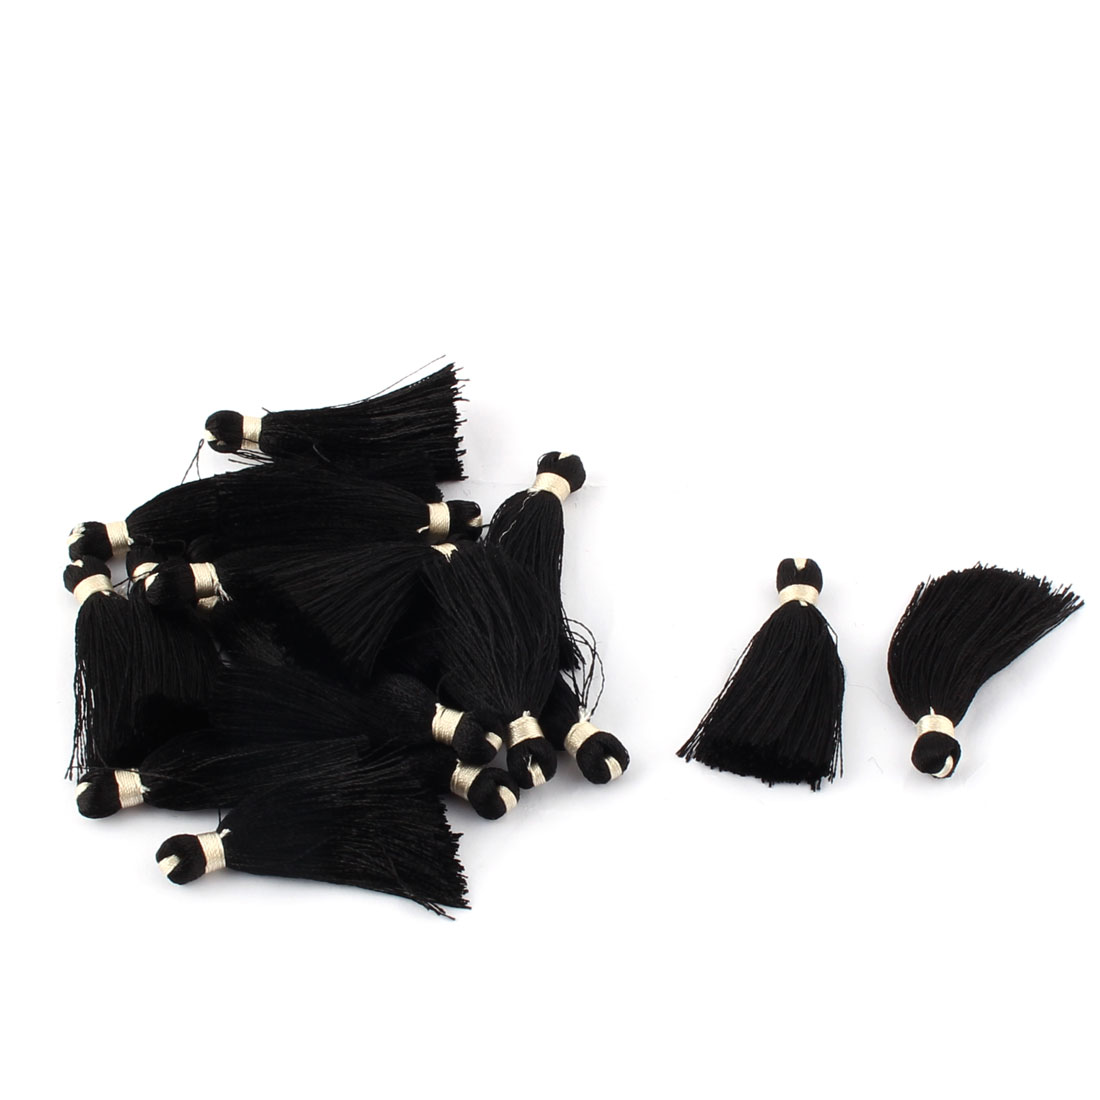 Household Polyester Decoration Handcraft DIY Jewelry Tassel Cord Black 20 PCS